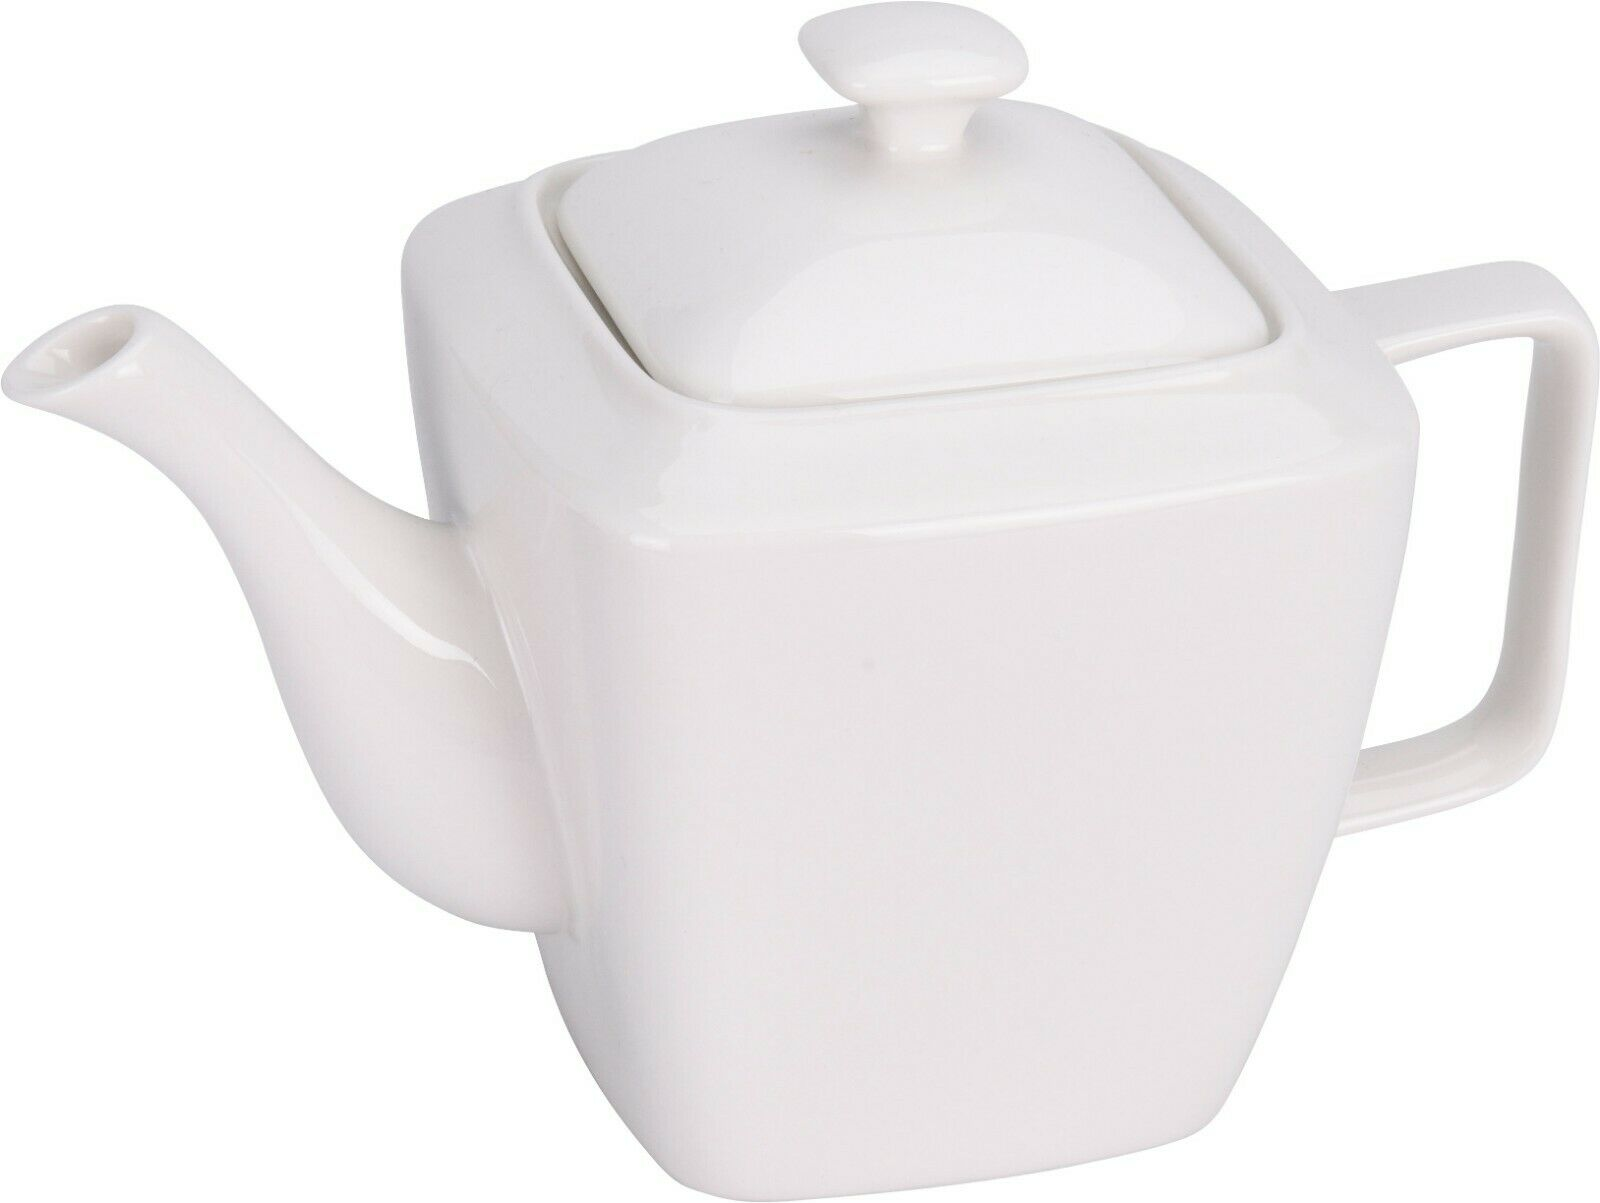 White Porcelain Teapot Square Shaped Modern 1 Litre White Tea Pots